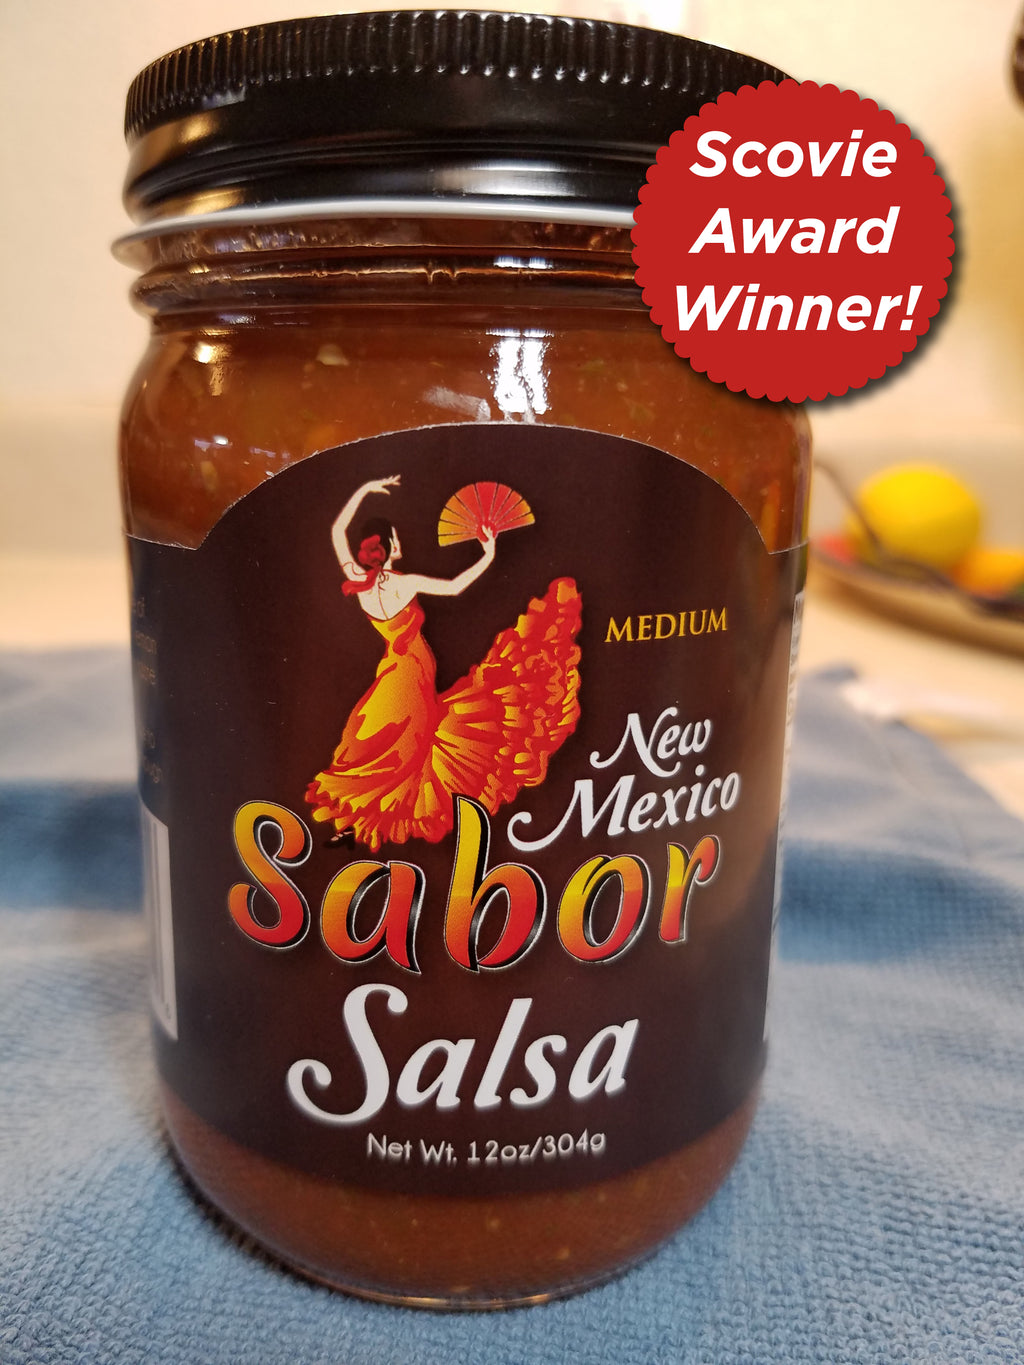 New Mexico Sabor - Salsa Medium